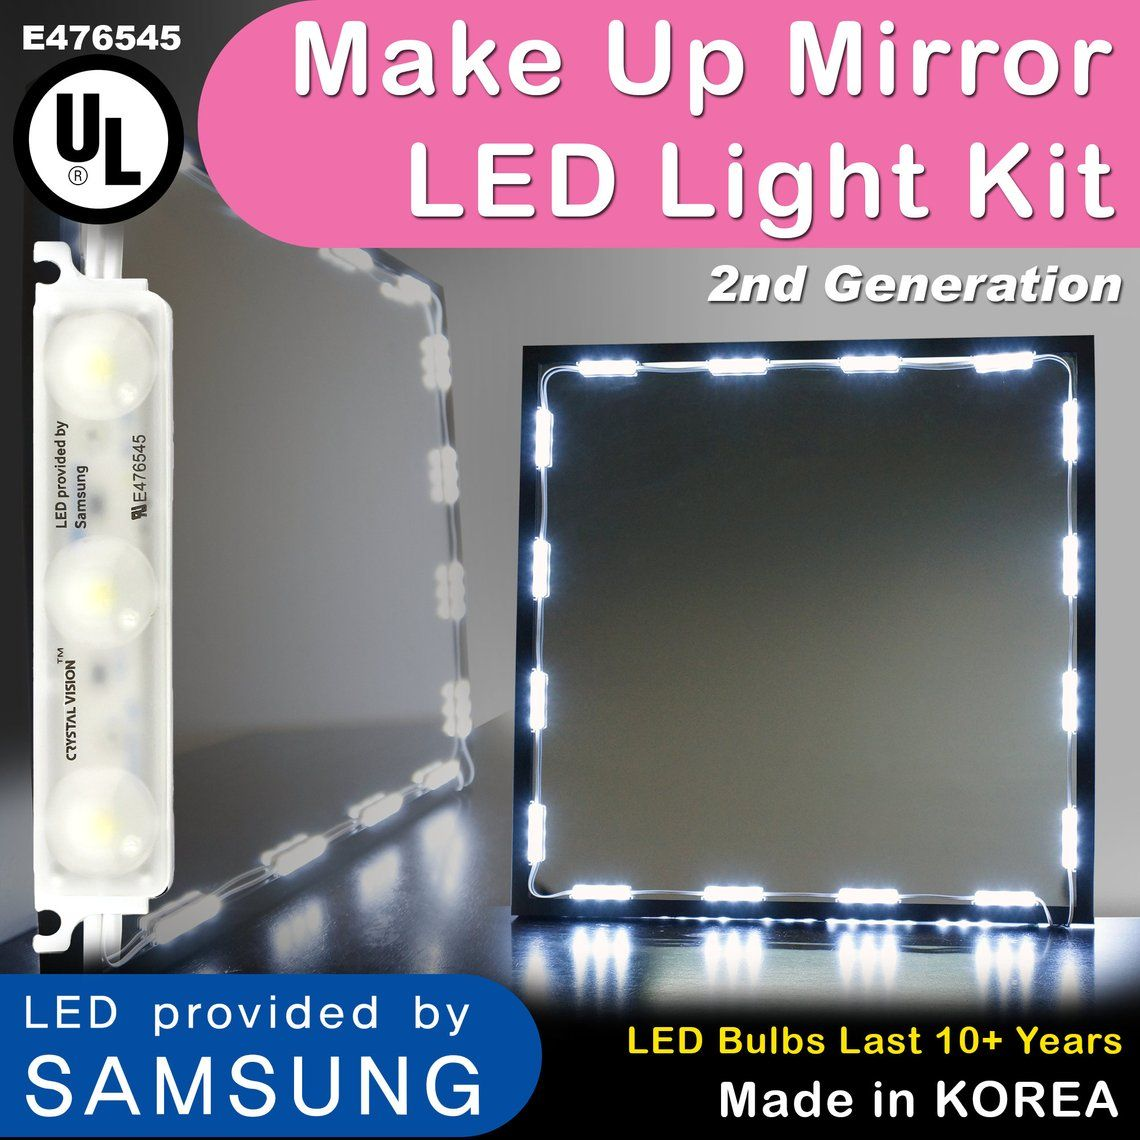 MAKE UP MIRROR LED LIGHT WARM WHITE COLOR WITH DIMMER /& UL POWER ADAPTER